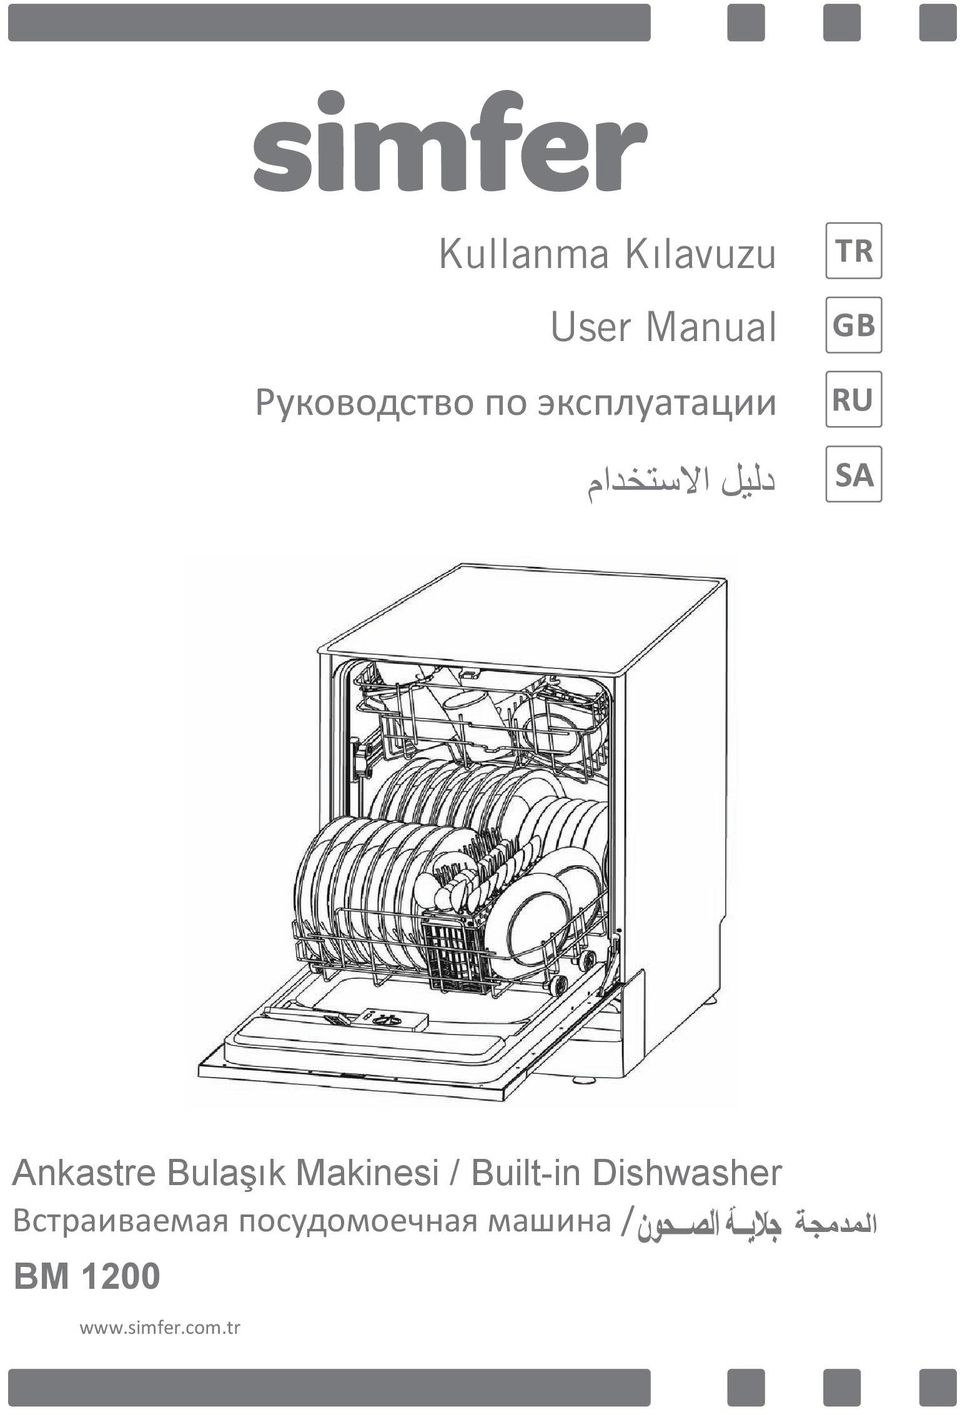 Makinesi / Built-in Dishwasher Встраиваемая